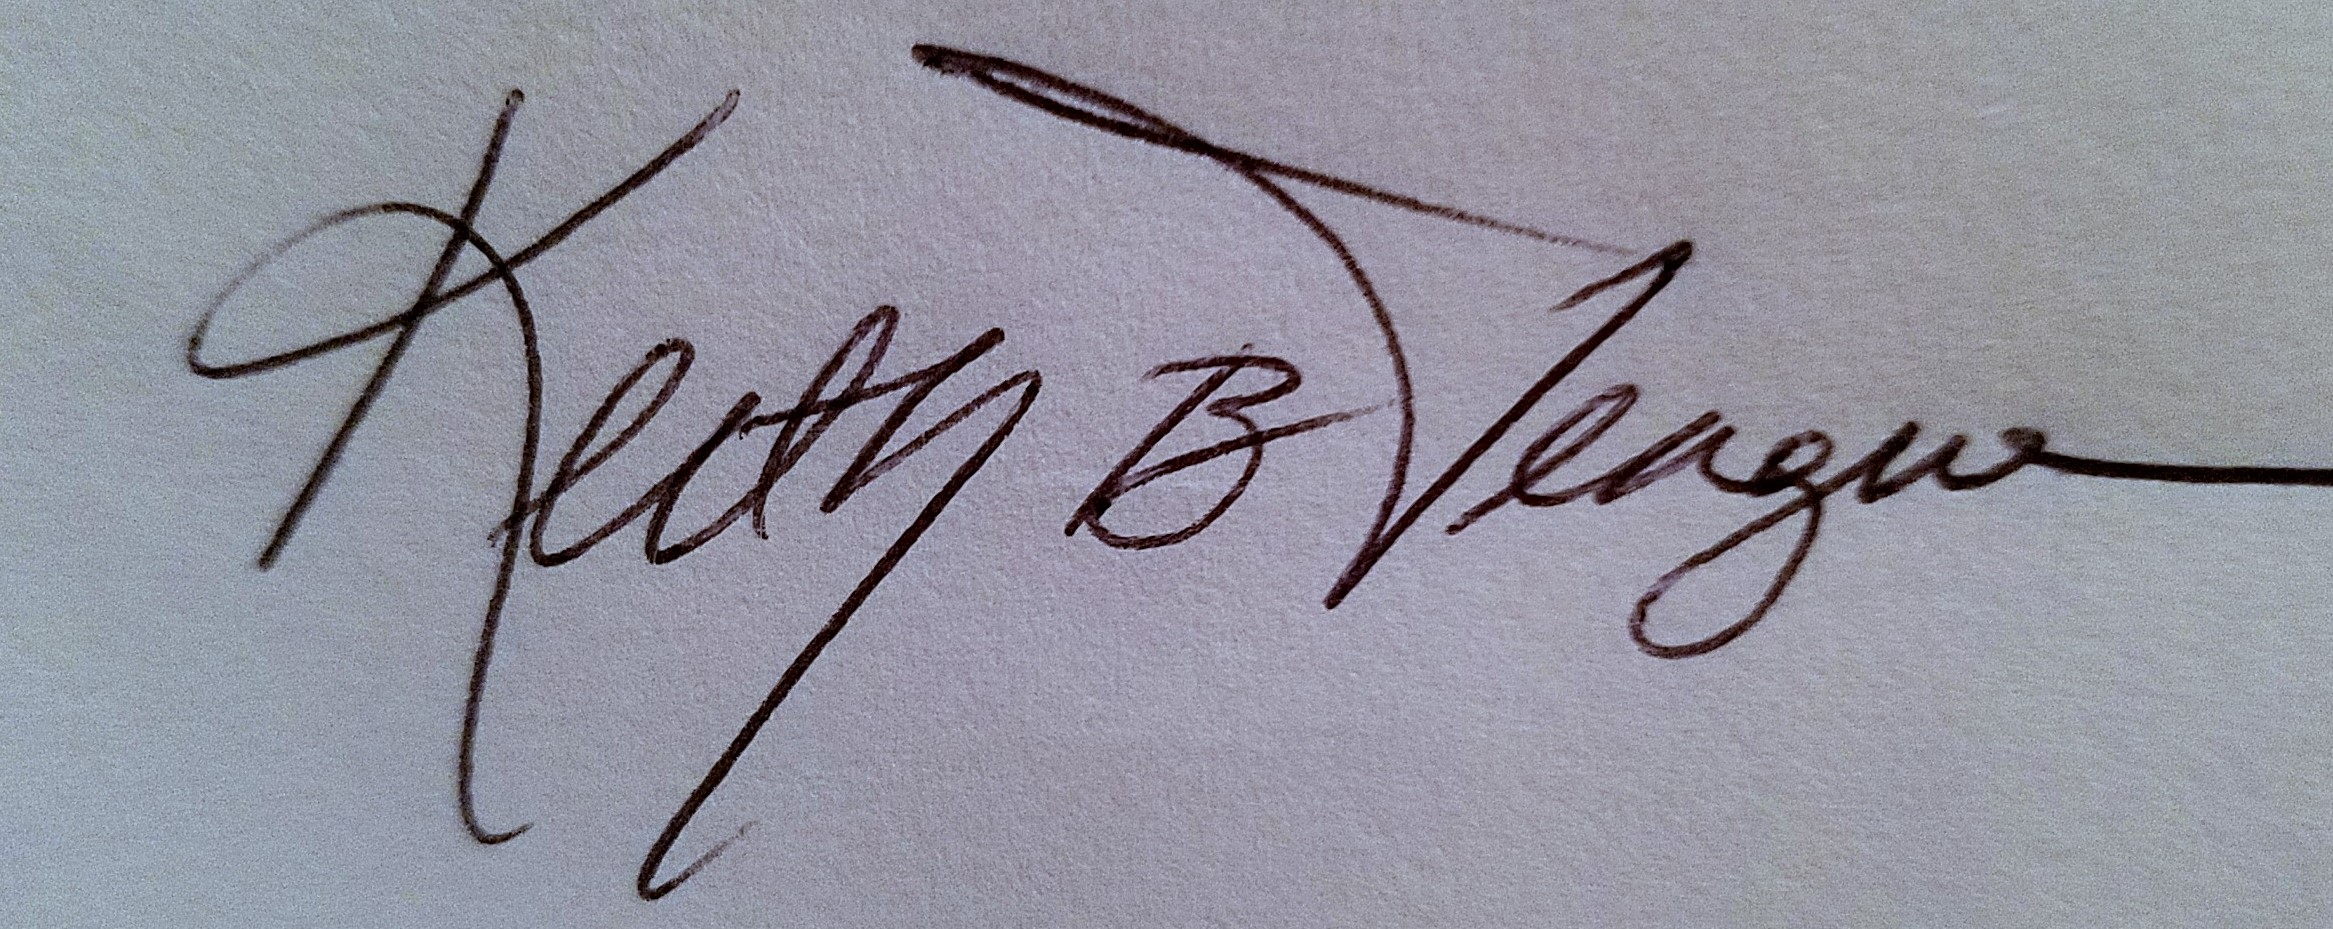 Keith Teague's Signature